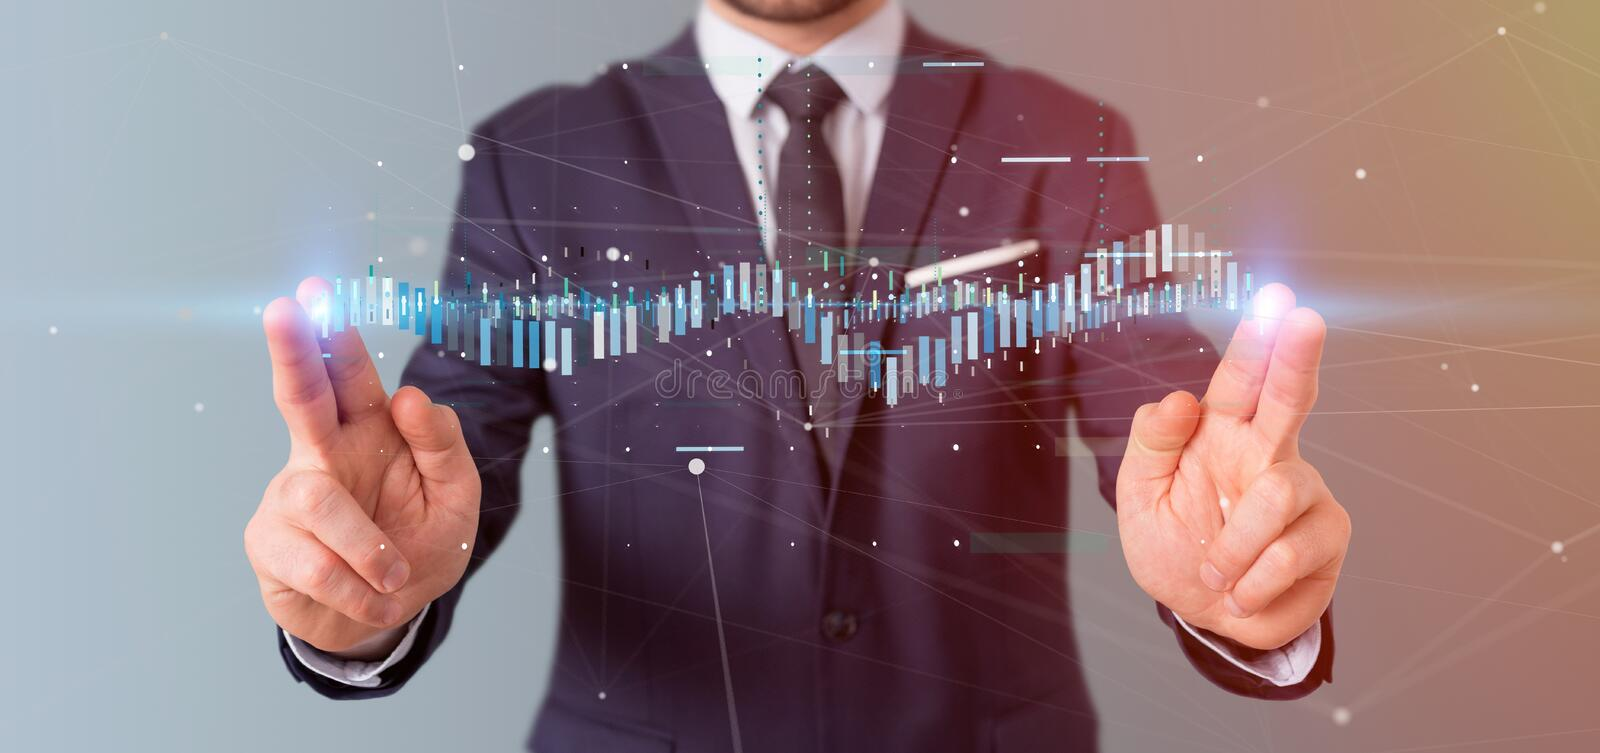 Businessman holding a Business stock exchange trading data information. View of a Businessman holding a Business stock exchange trading data information stock photography